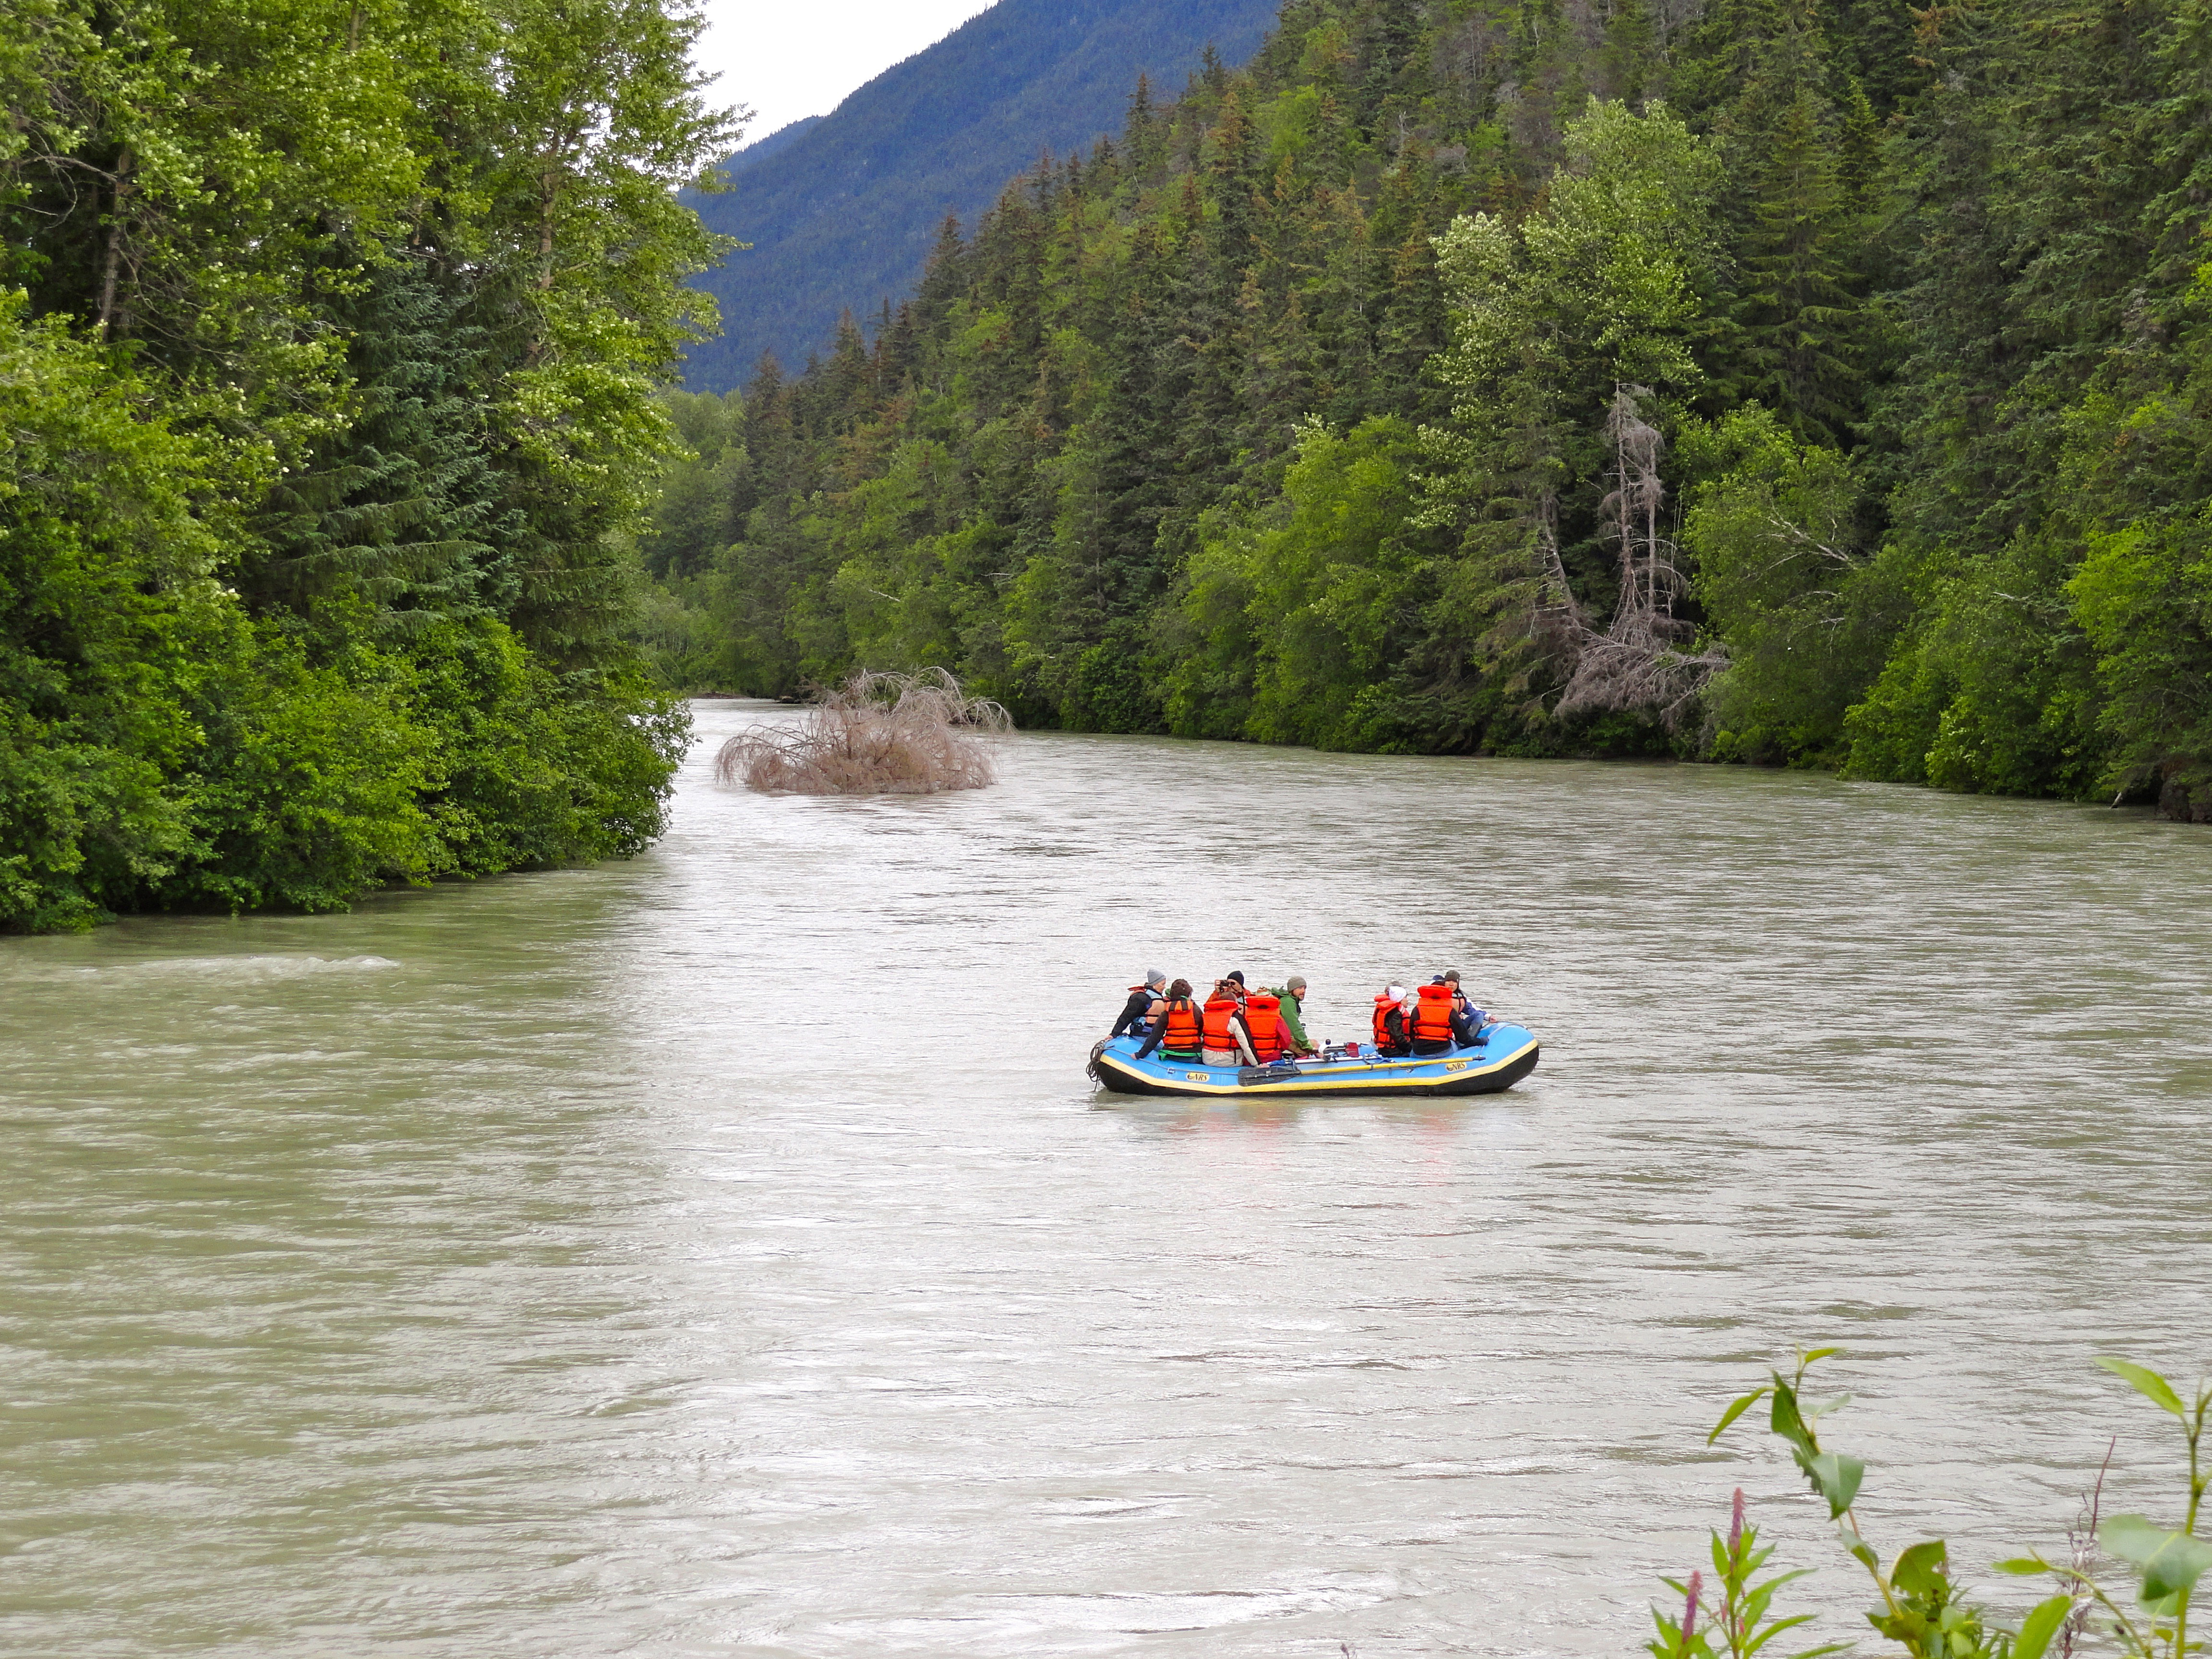 people going down the river in alaska image free stock photo